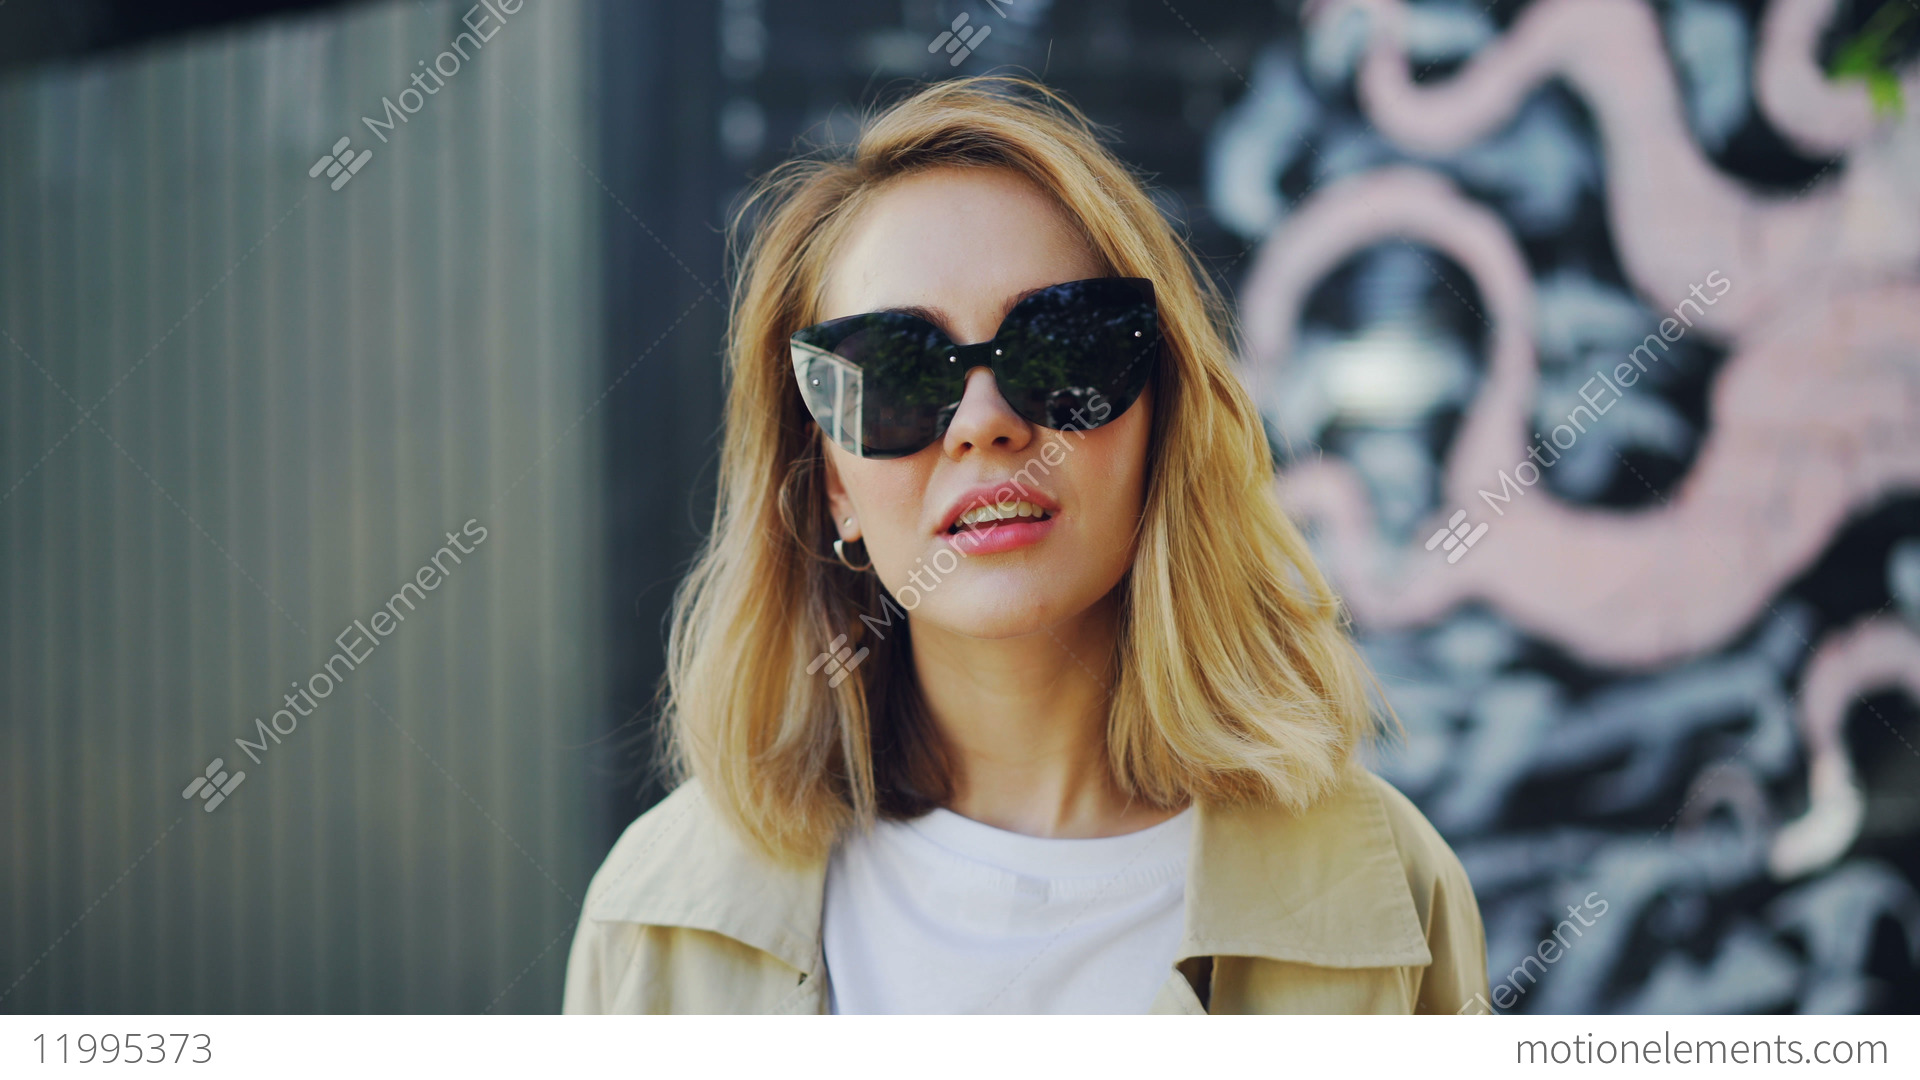 935bd4c906 Portrait of beautiful blond girl in sunglasses looking at... Stock Video  Footage